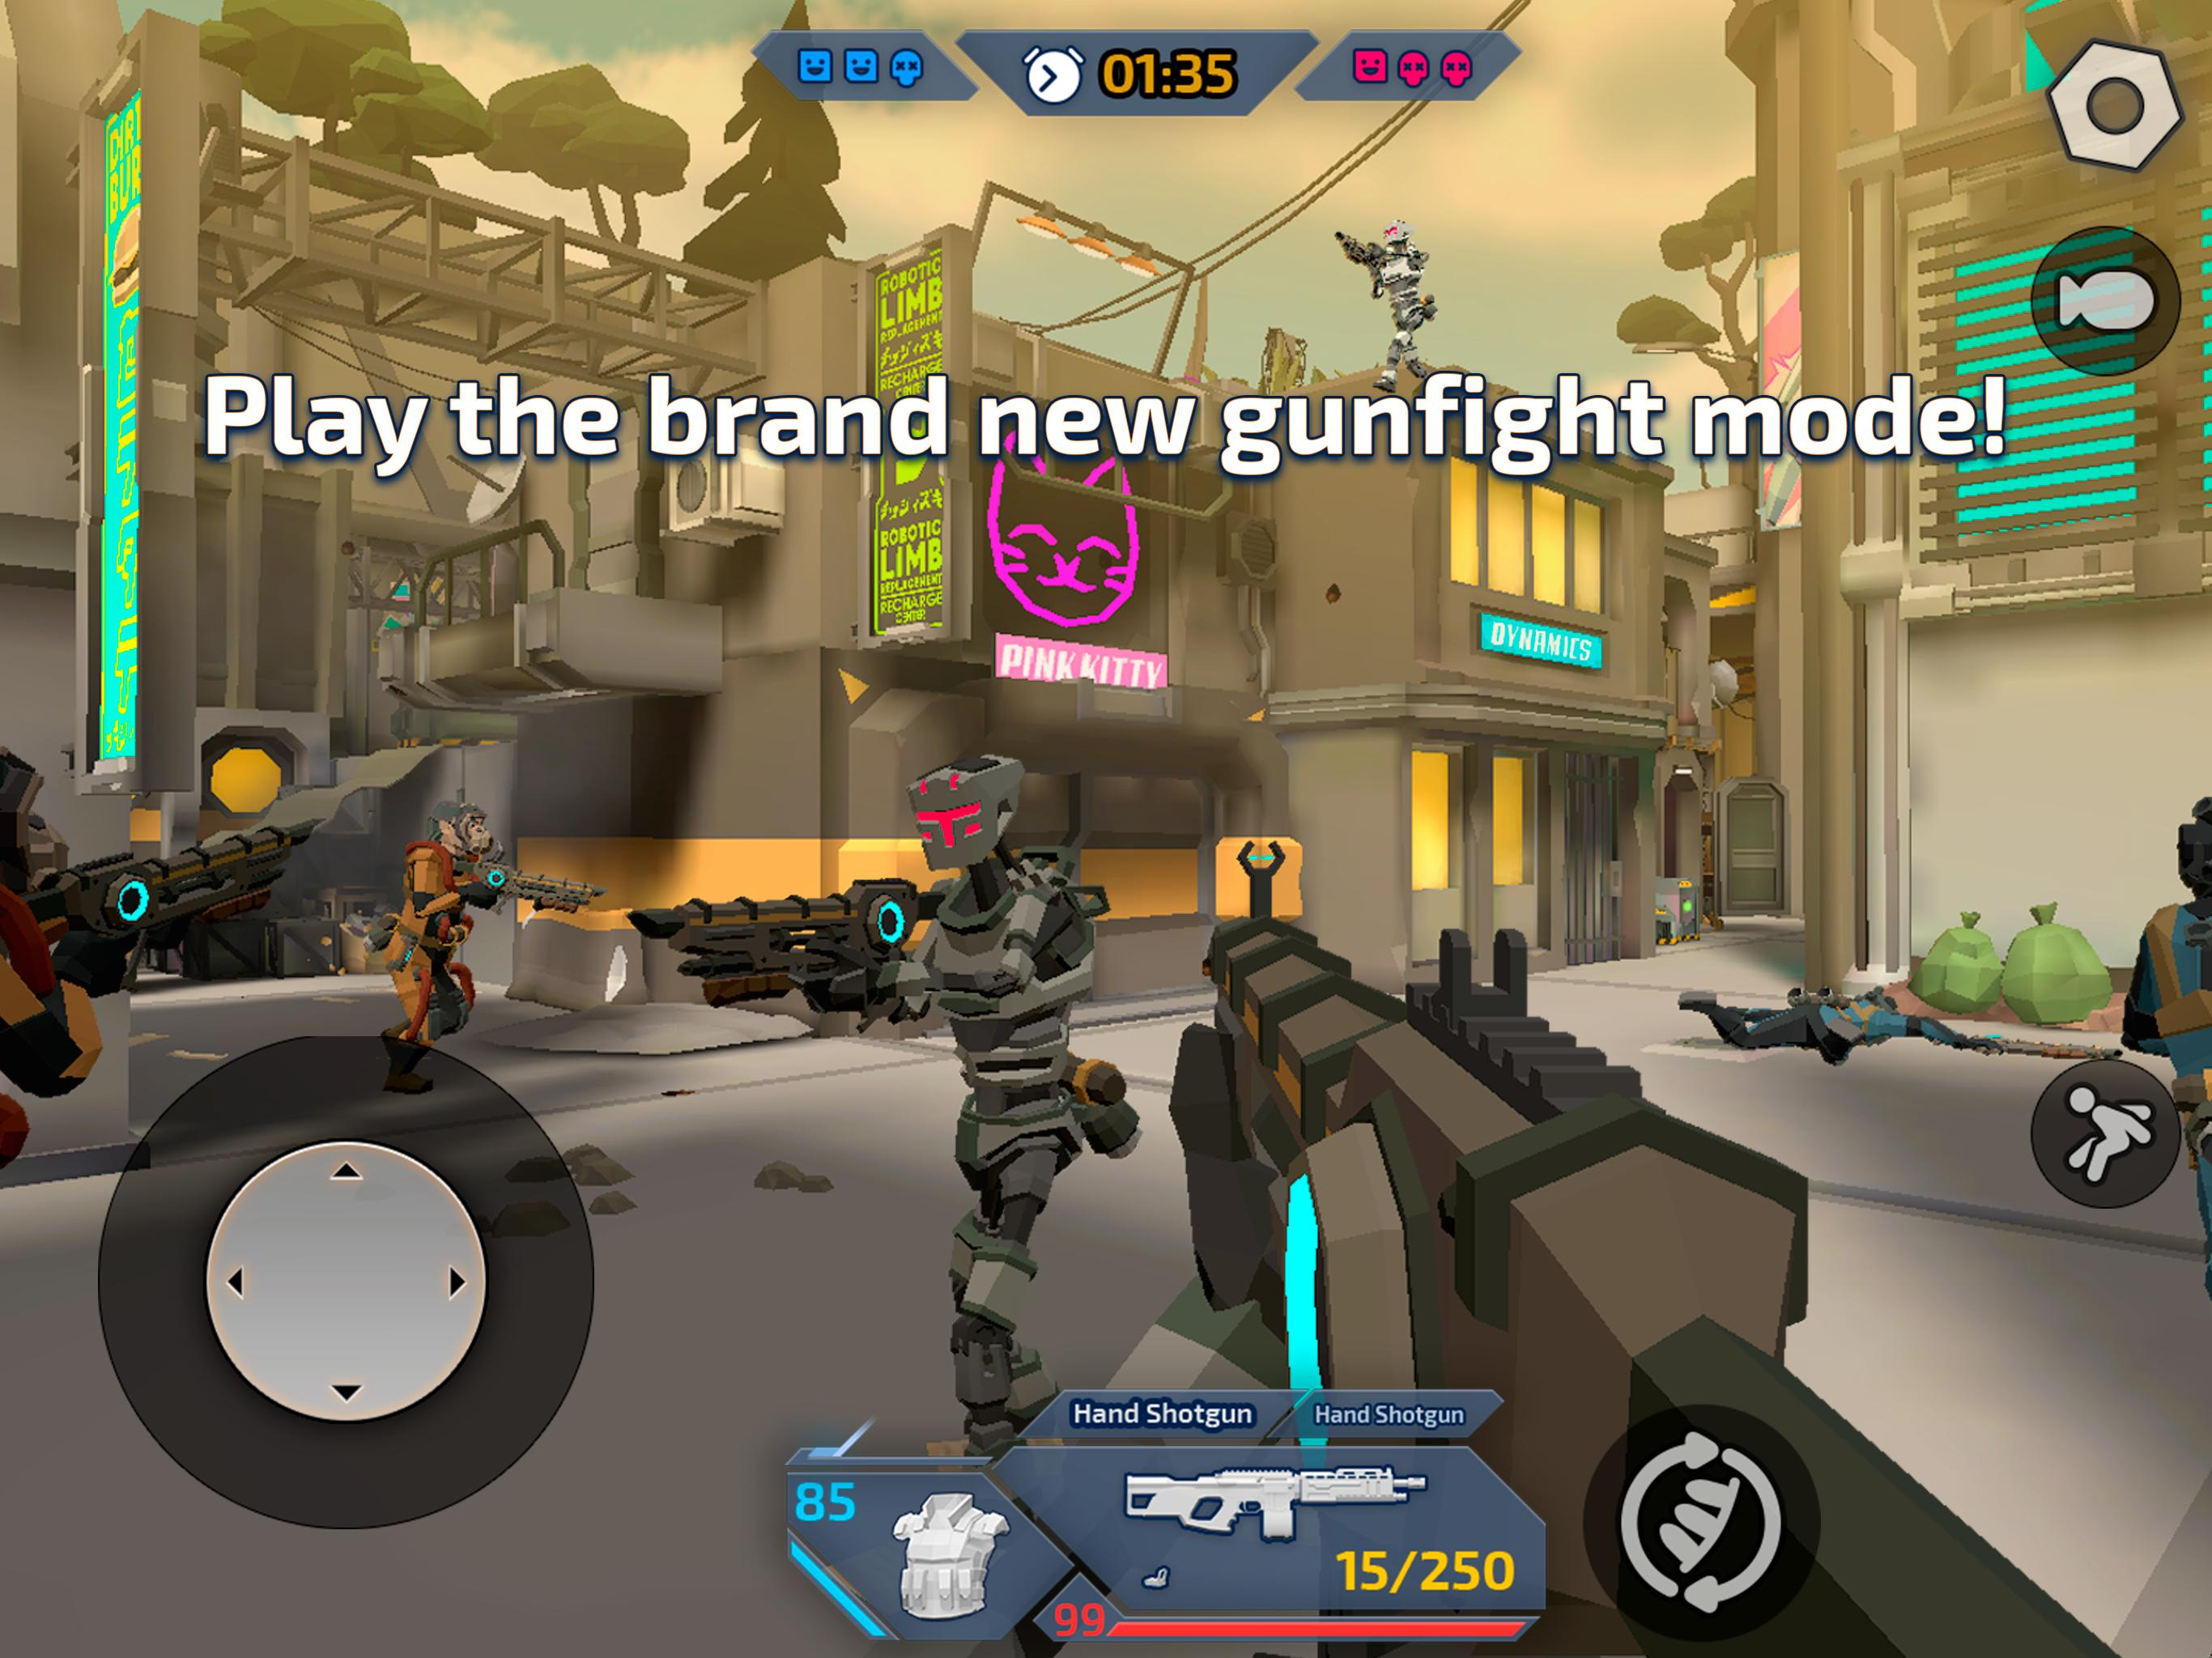 CALL OF GUNS: survival duty mobile offline FPS for Android - APK Download